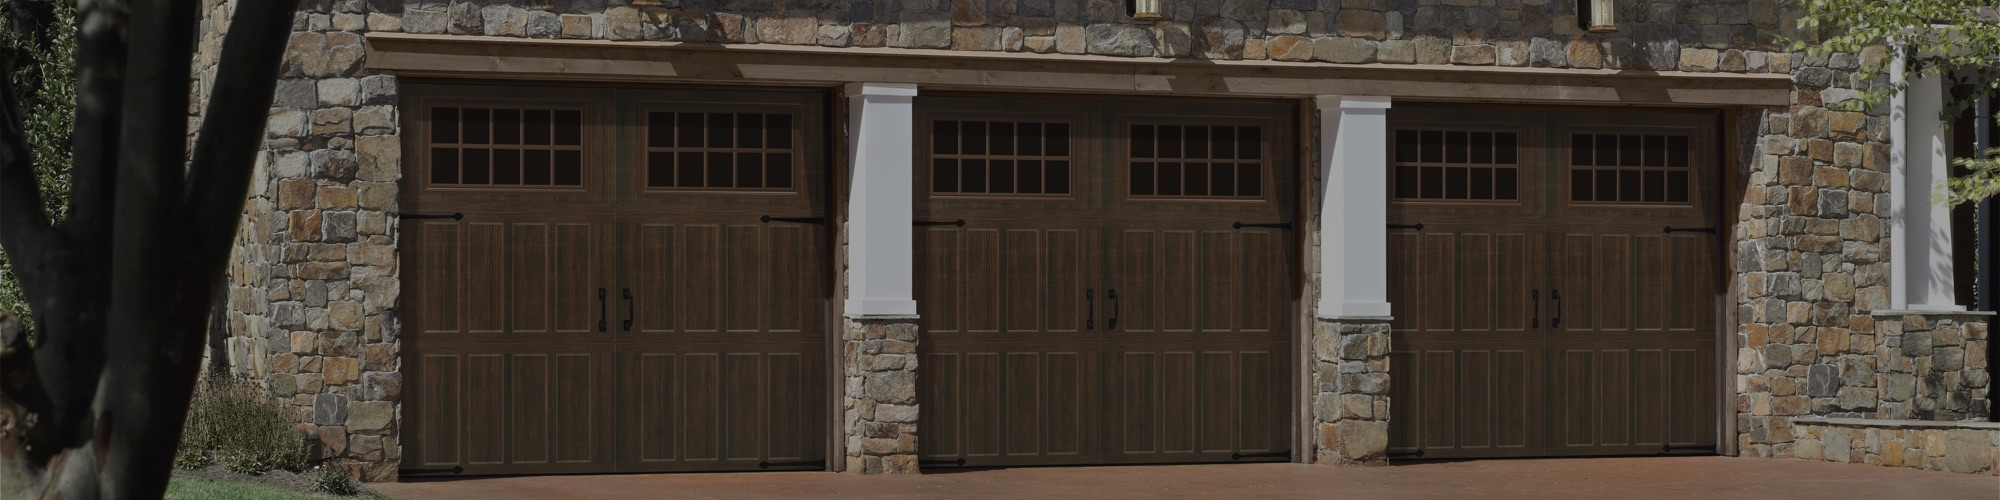 Garage Design Ottawa The Garage Door Depot Ottawa S 1 Garage Door Company